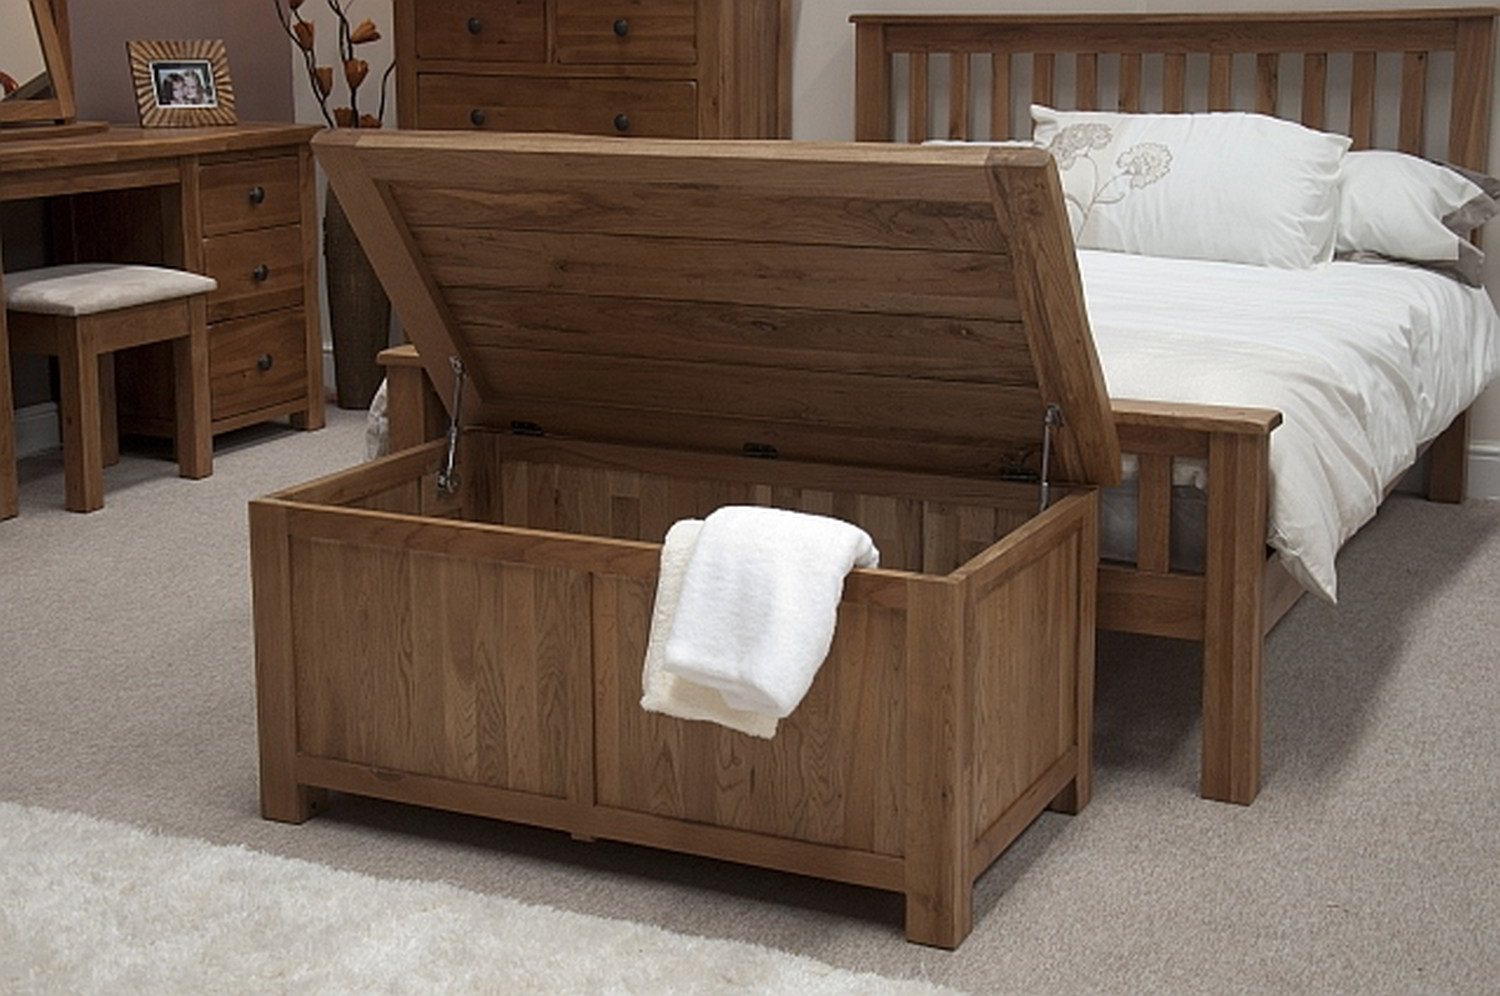 Bedroom Storage Boxes Tilson Solid Rustic Oak Bedroom Furniture Blanket Storage